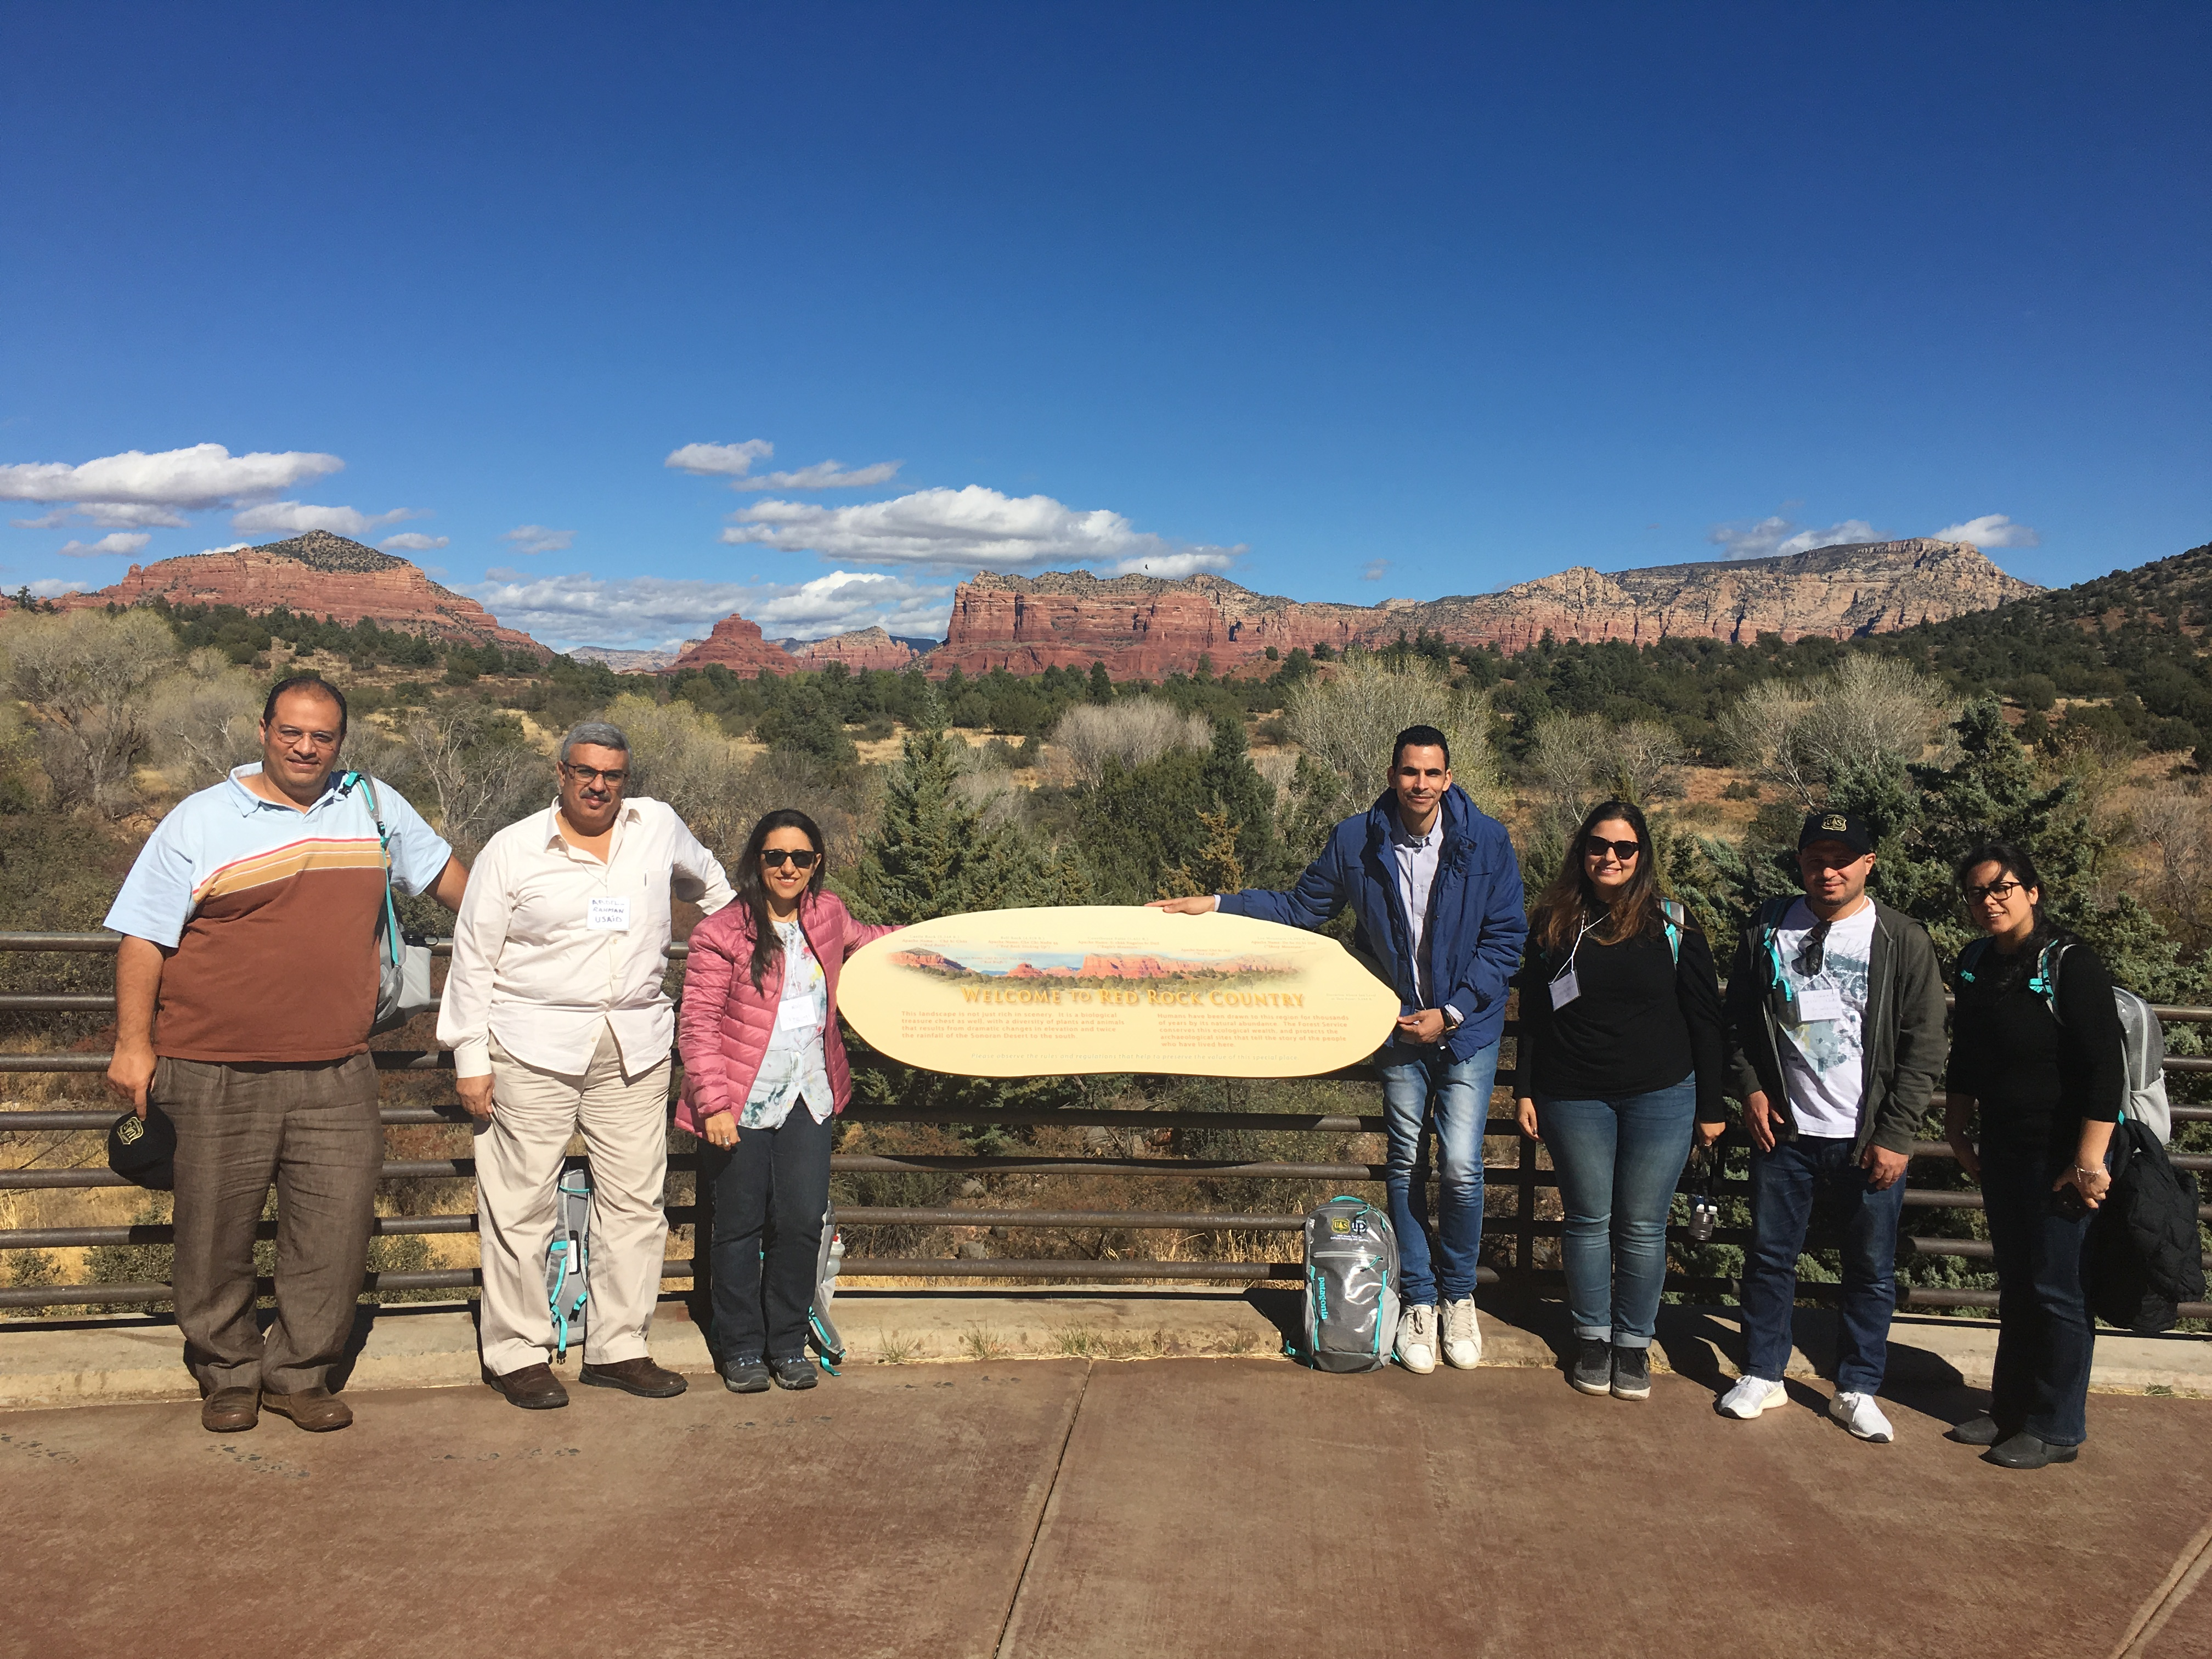 Photo: A group of people poses on either side of an interpretive sign. A mountain range is seen in the distance.